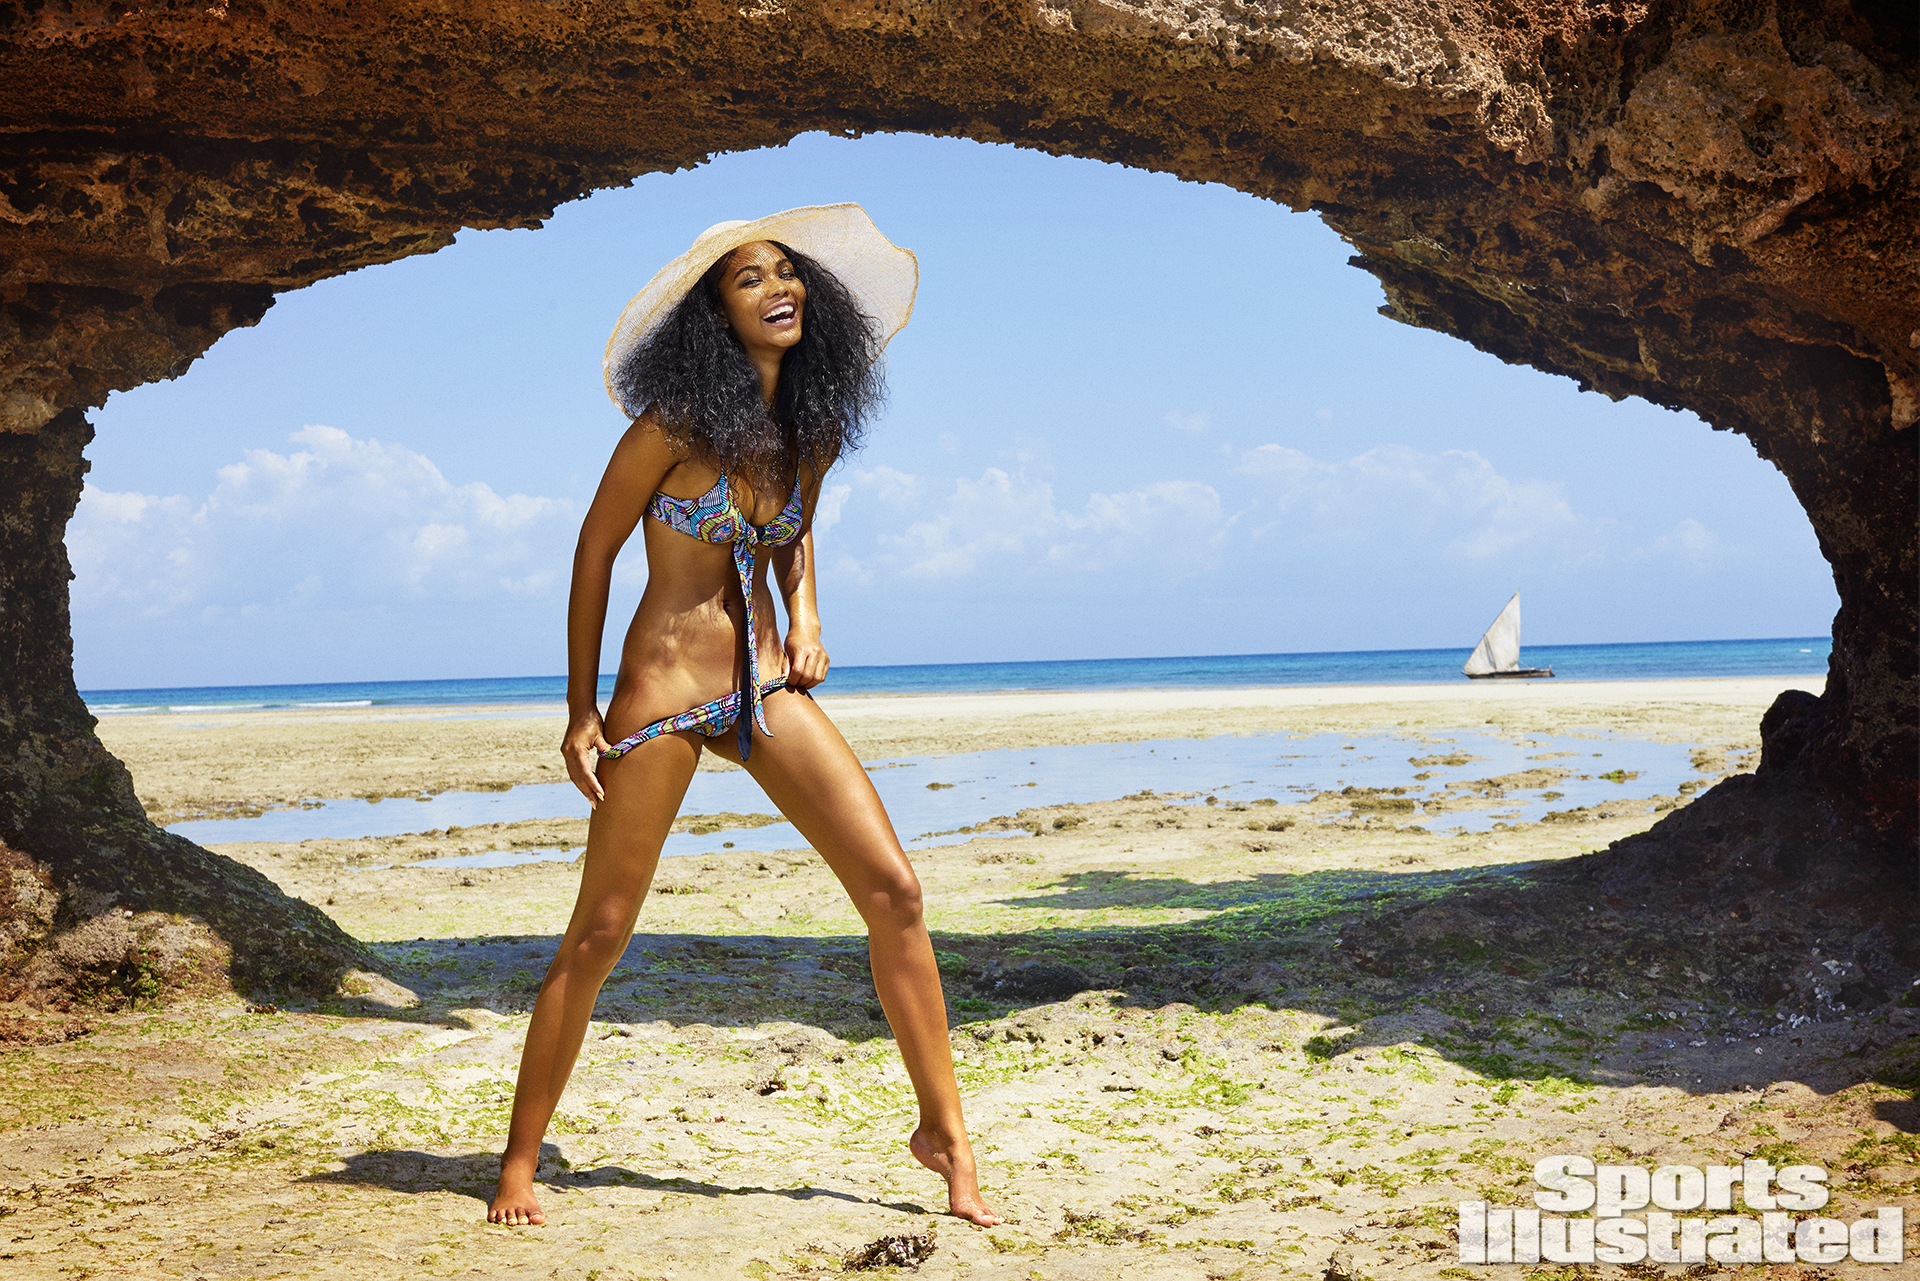 Chanel Iman was photographed by Ruven Afanador in Zanzibar. Swimsuit by L*SPACE By Monica Wise.